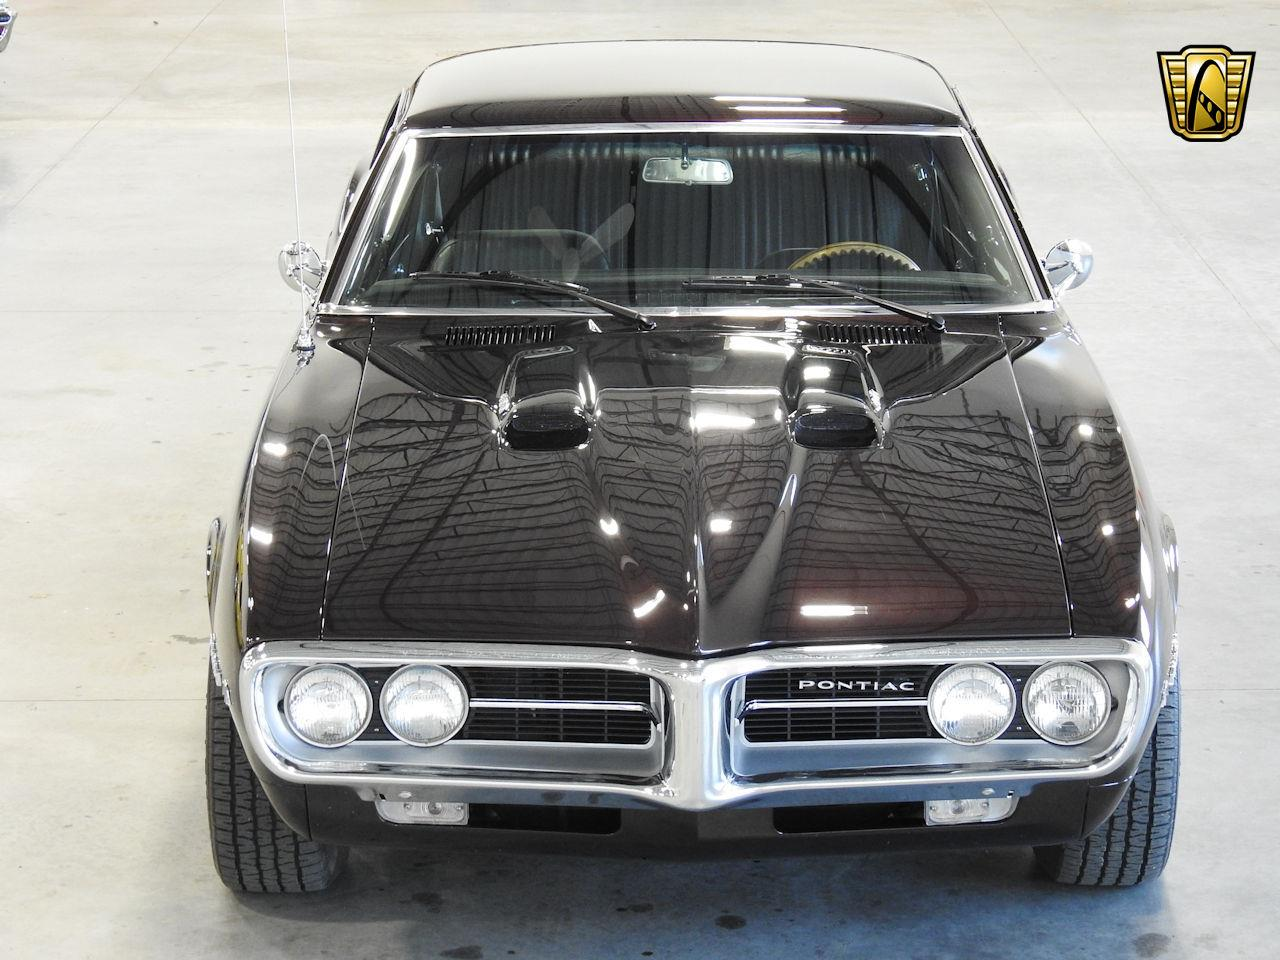 Large Picture of '67 Pontiac Firebird located in Kenosha Wisconsin - $34,995.00 Offered by Gateway Classic Cars - Milwaukee - MFCU